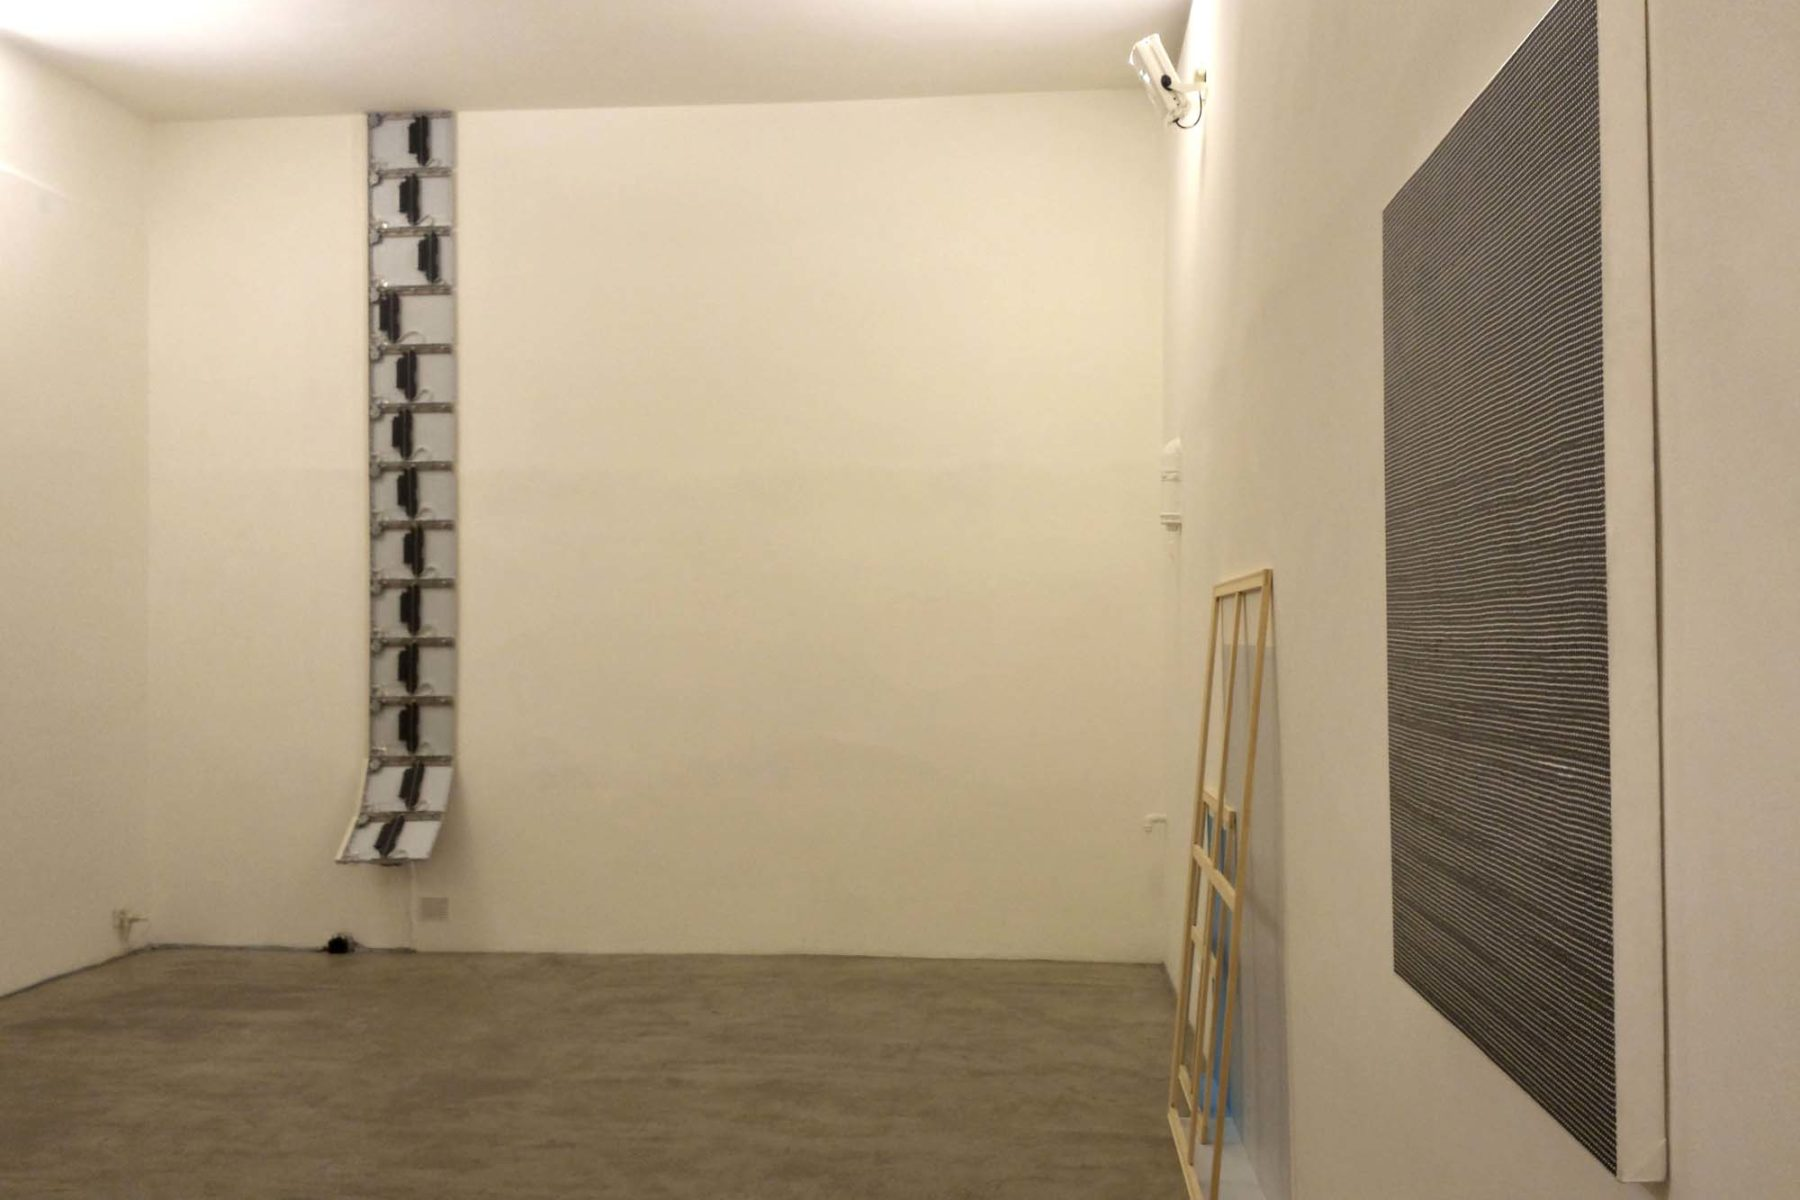 Interspace, exhbition view, Studio Tommaseo